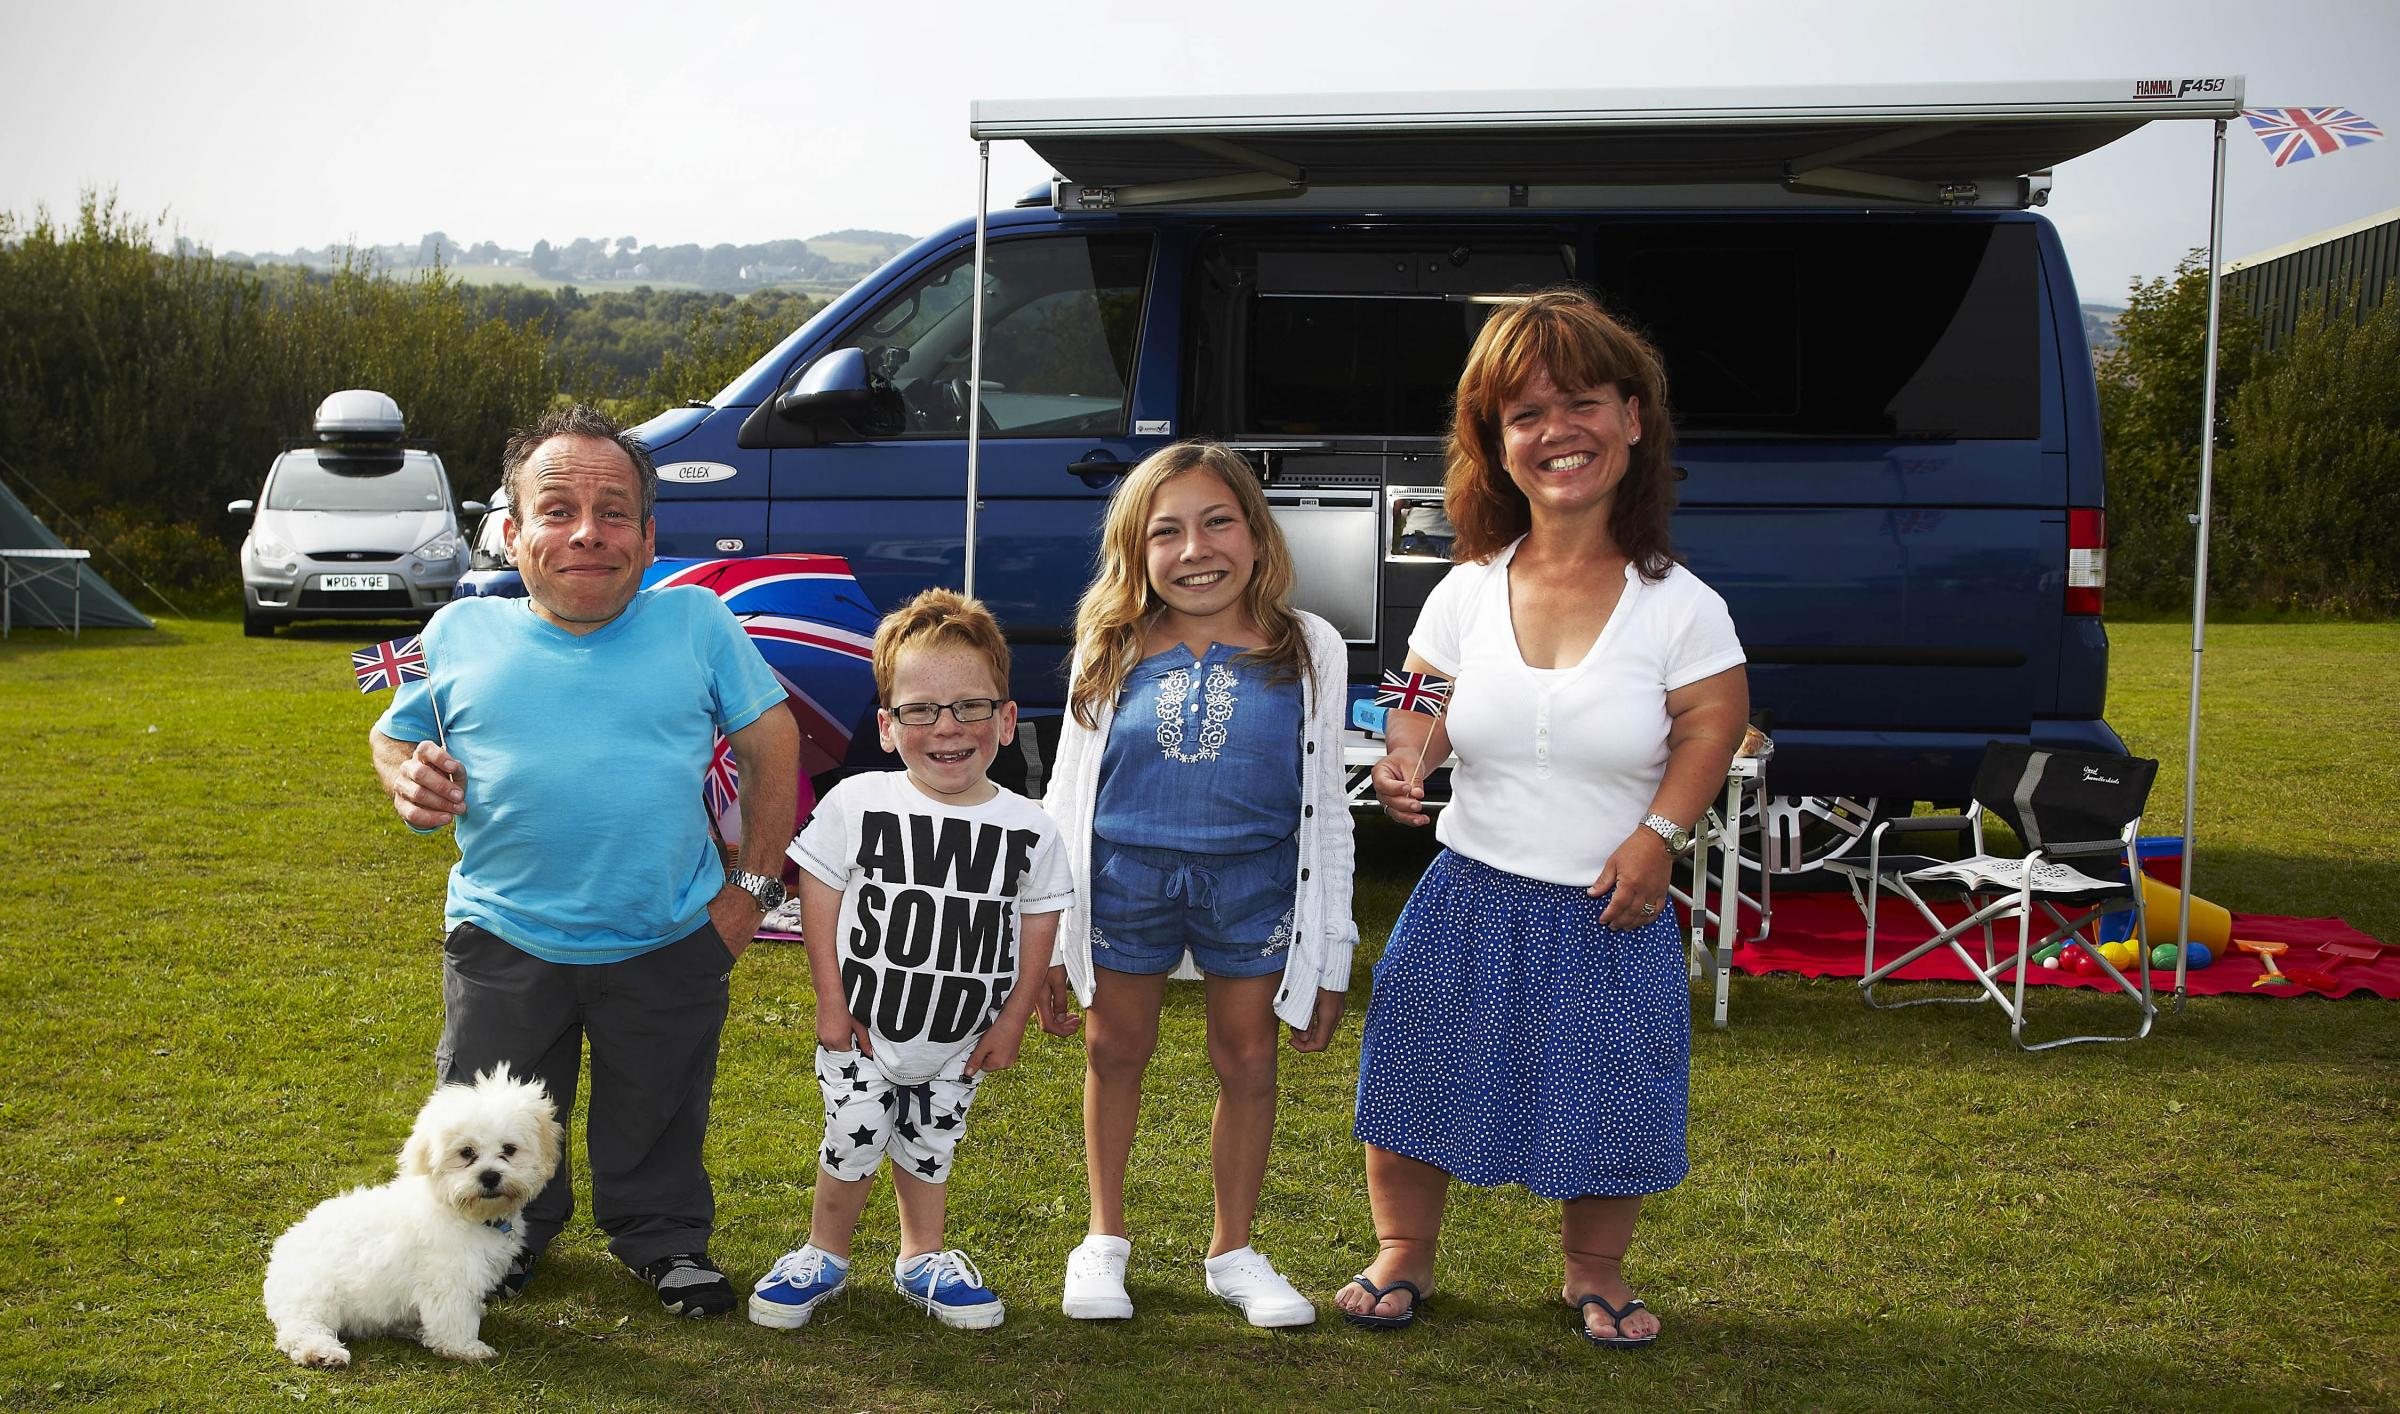 Hollywood star Warwick Davis showcases Lake District in new series